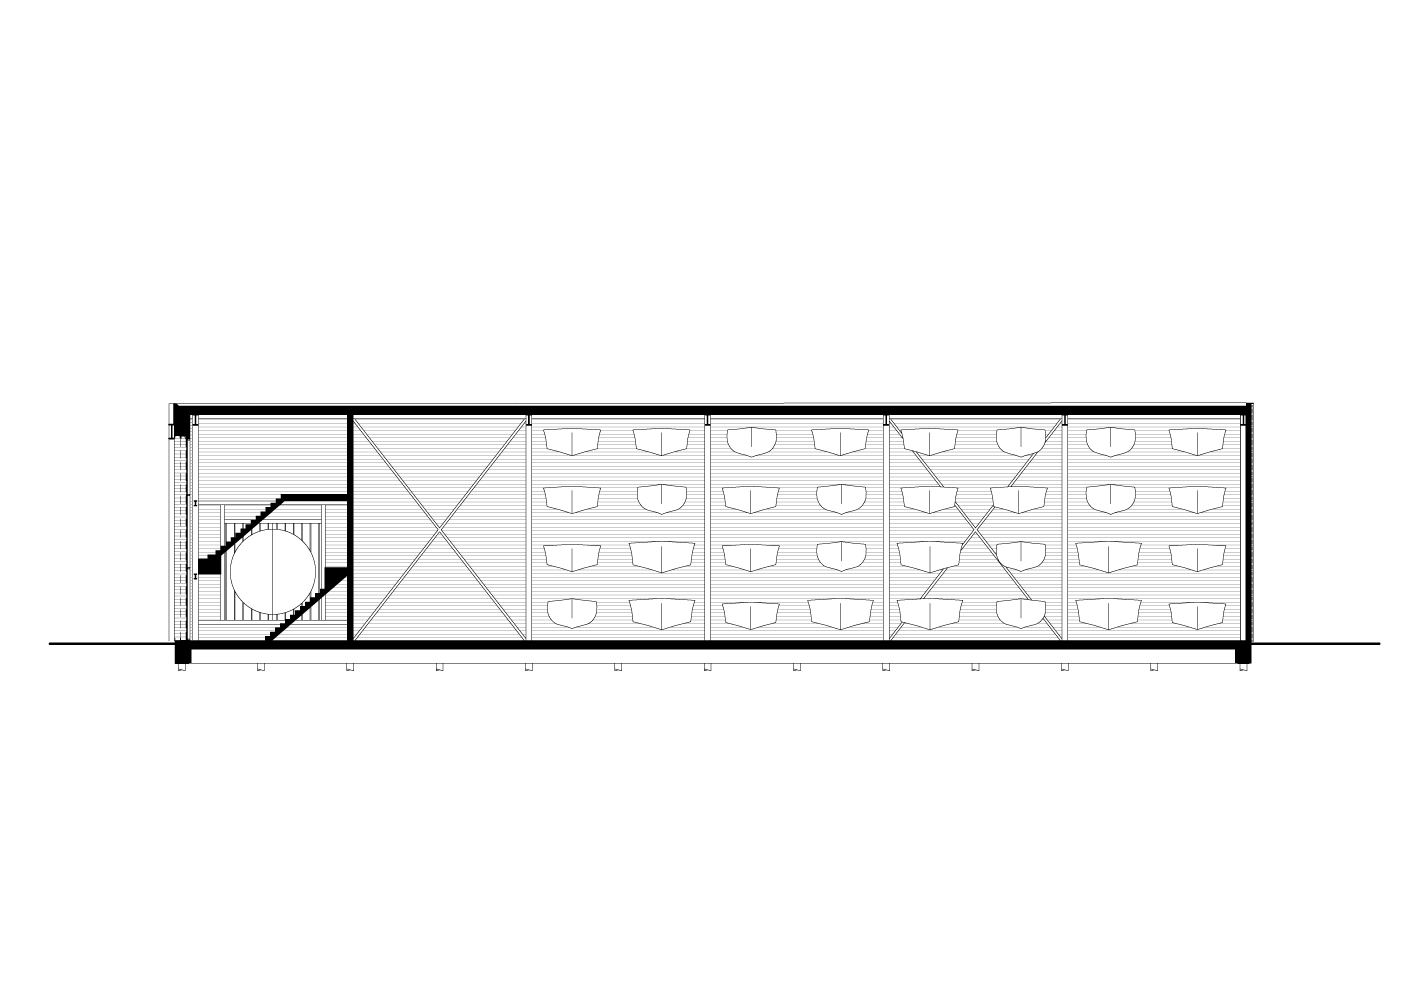 longitudinal section drawing of Boat Hangar project by BETA office for architecture and the city